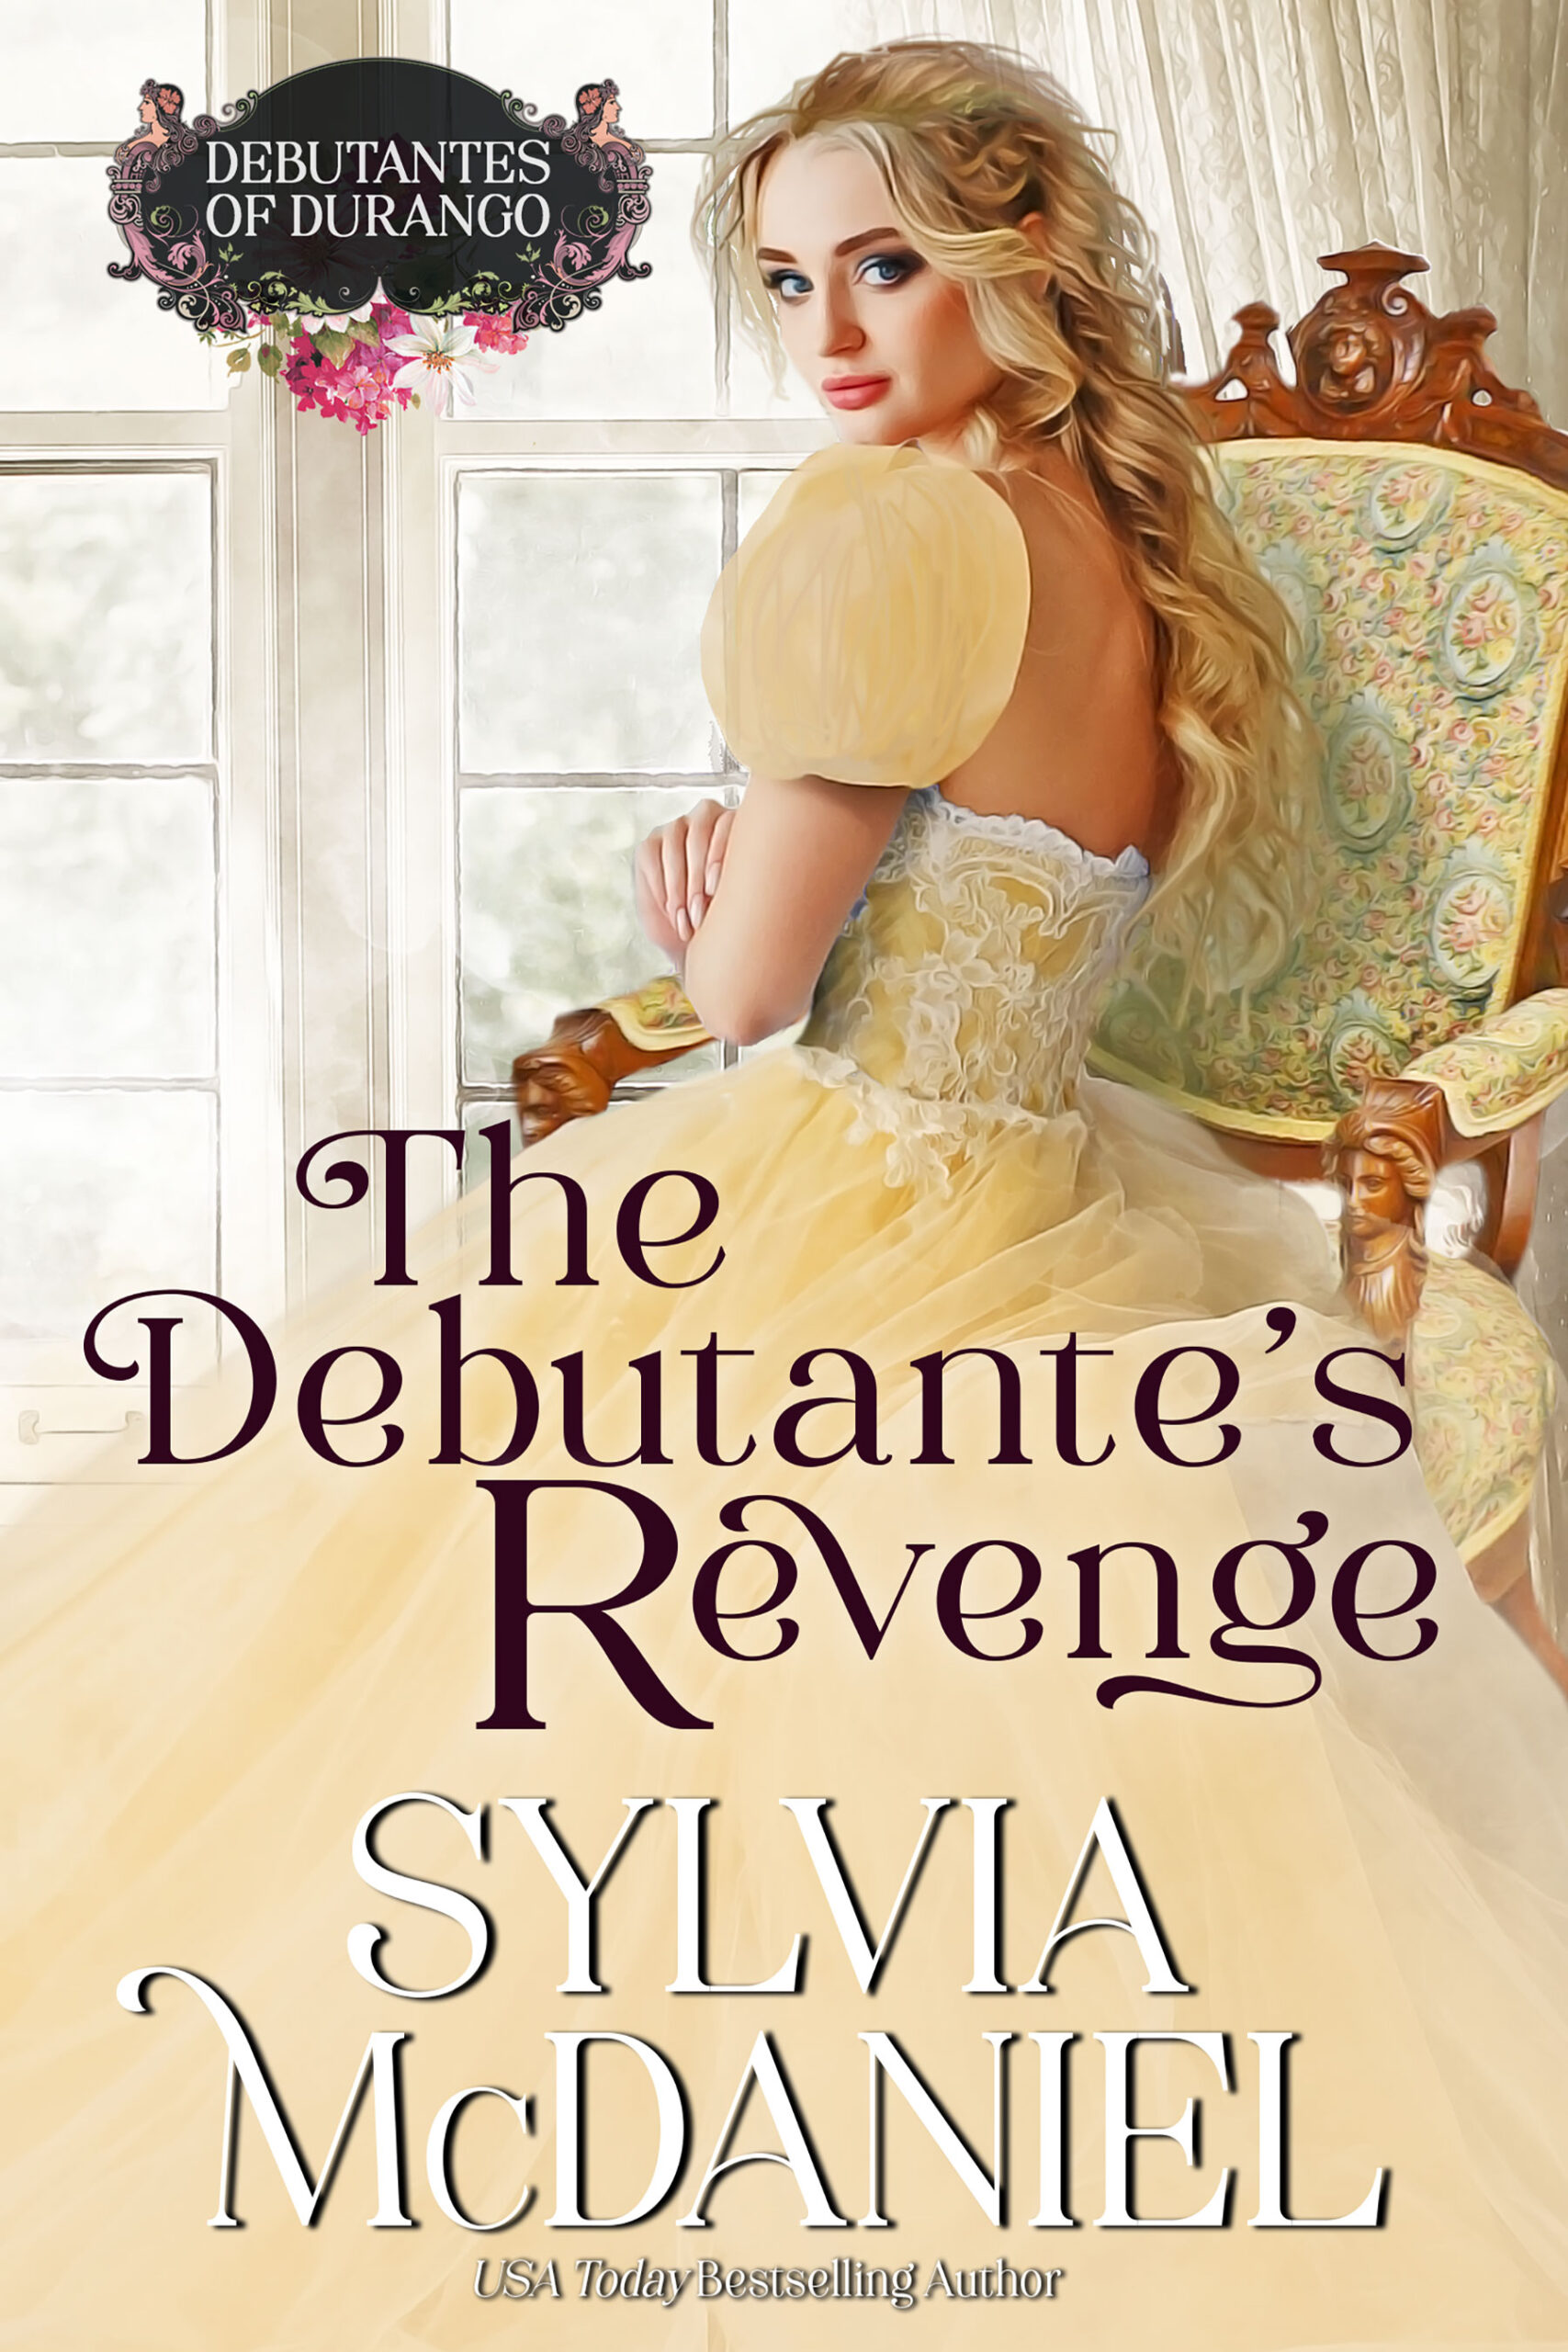 Cover of The Debutante's Revenge by Sylvia McDaniel. Blonde girl in a yellow dress looking back over her bare shoulder.